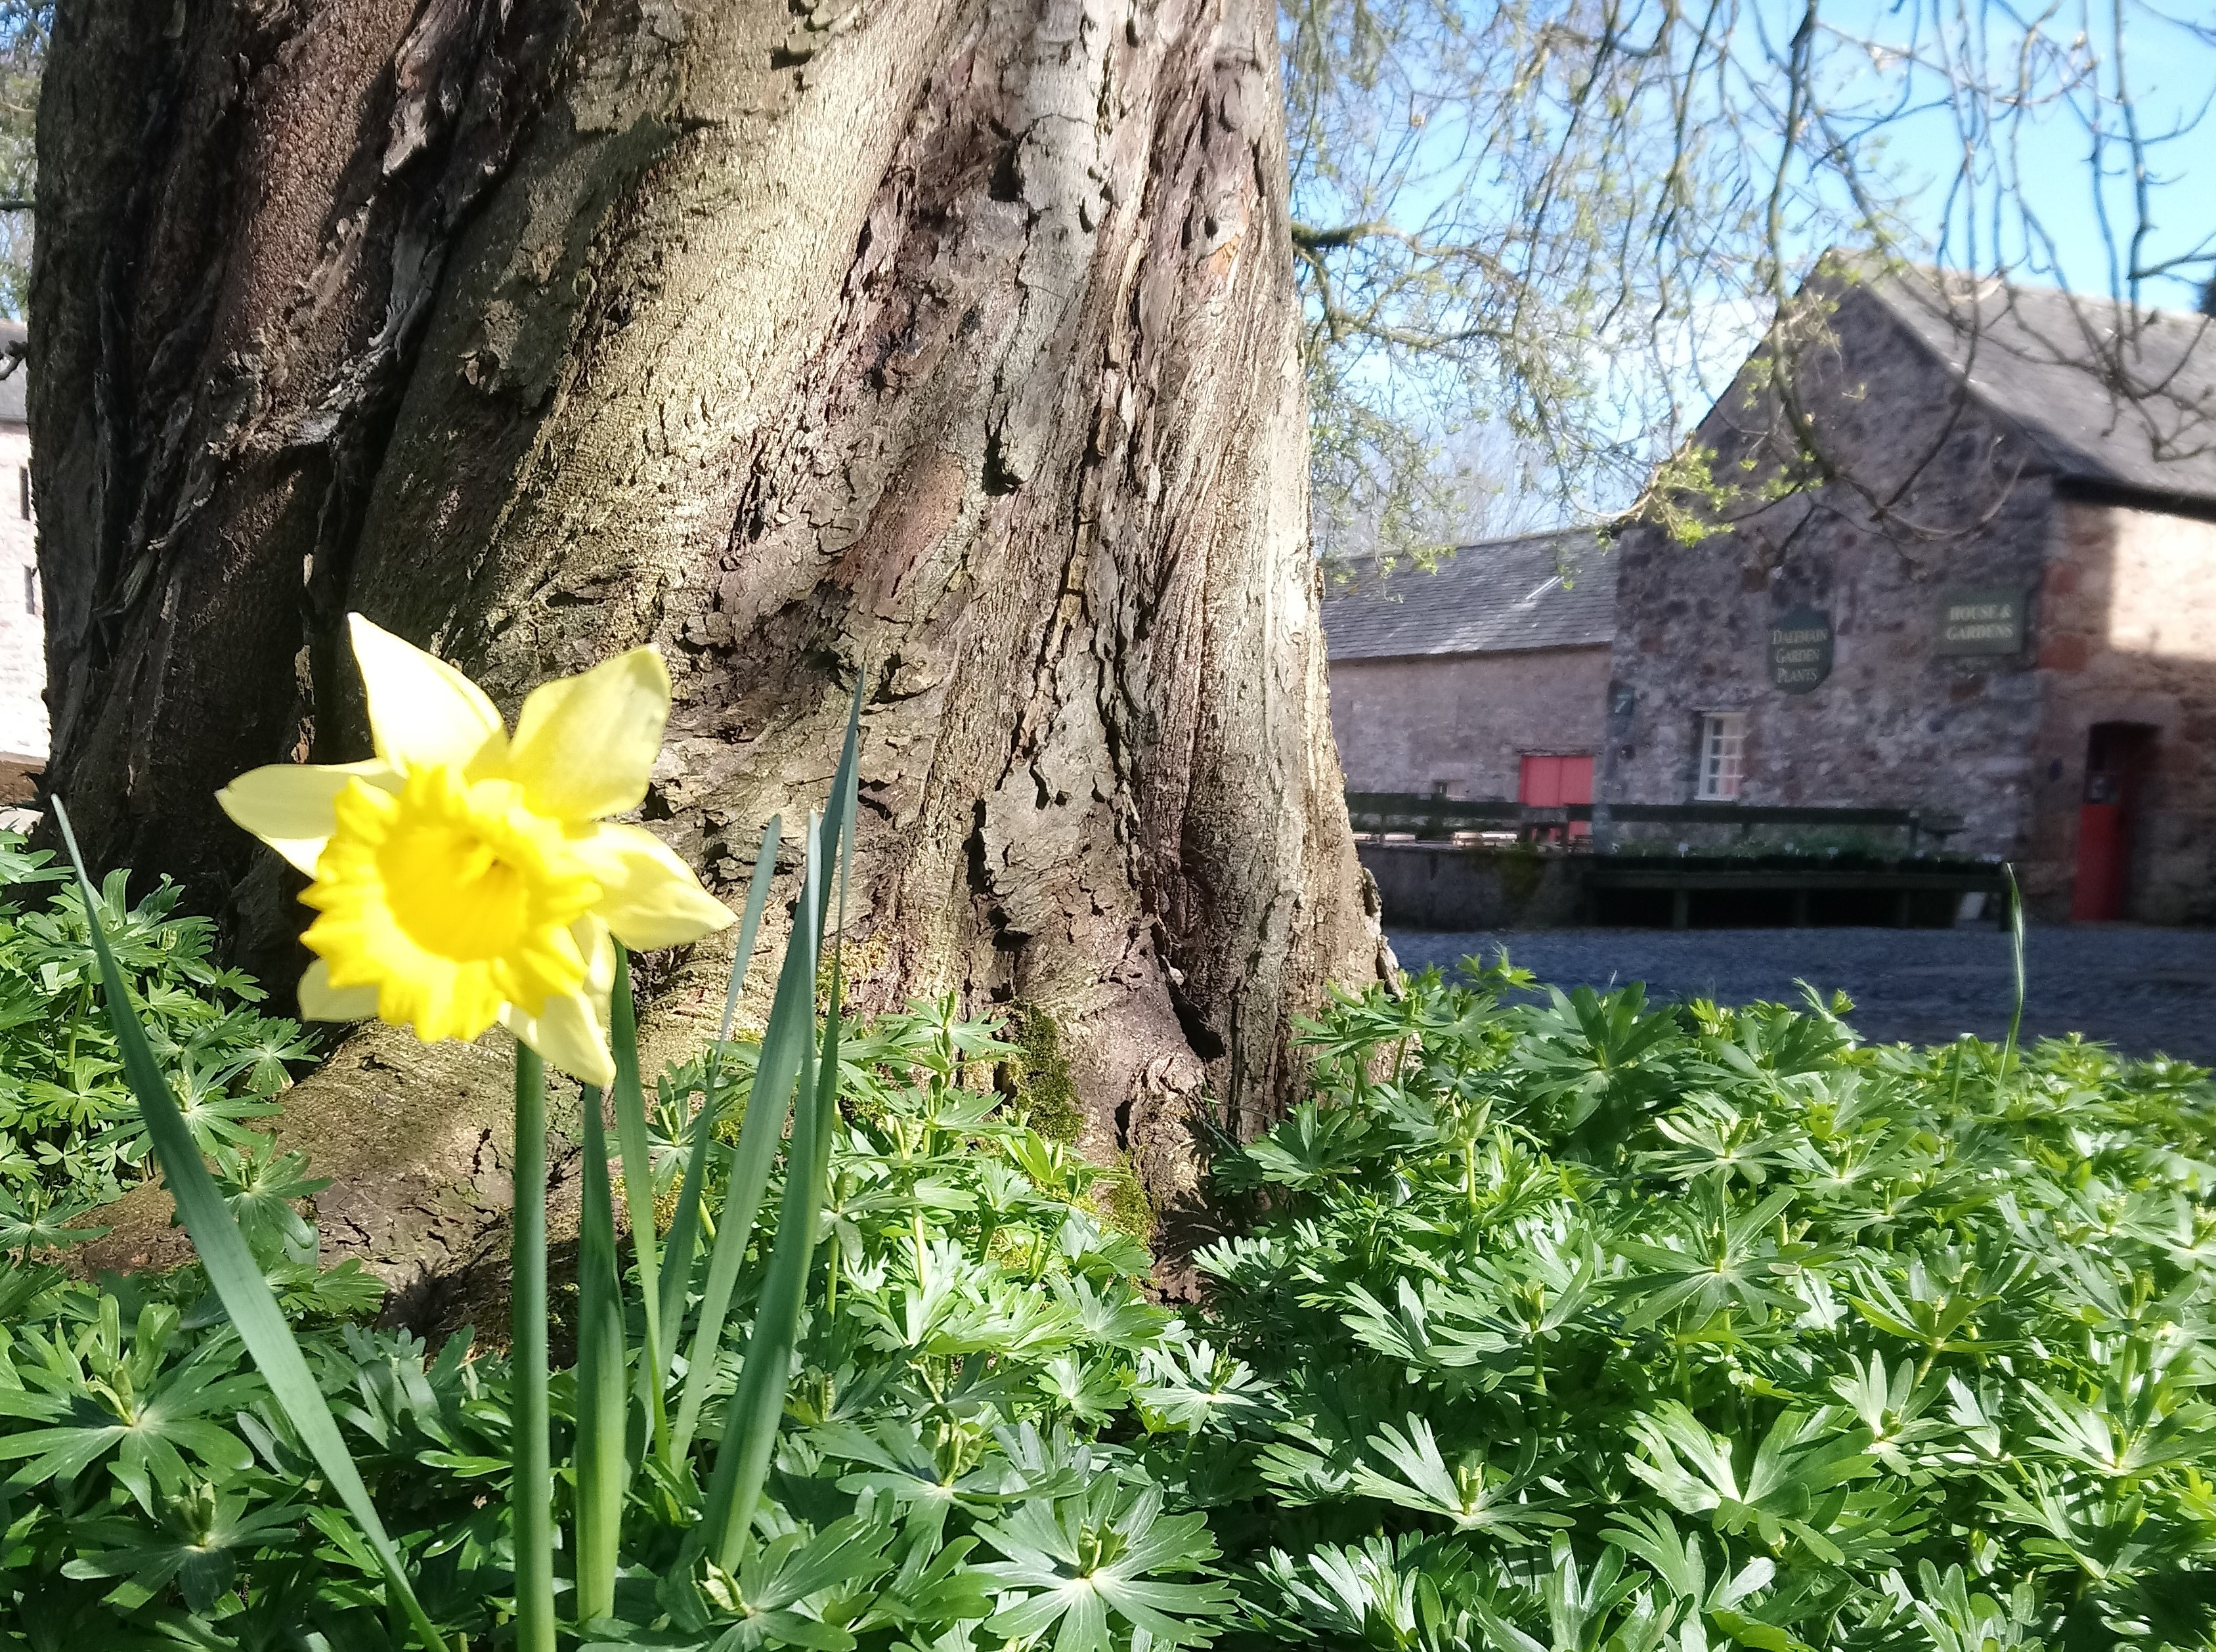 Daffodils in the Historic Courtyard